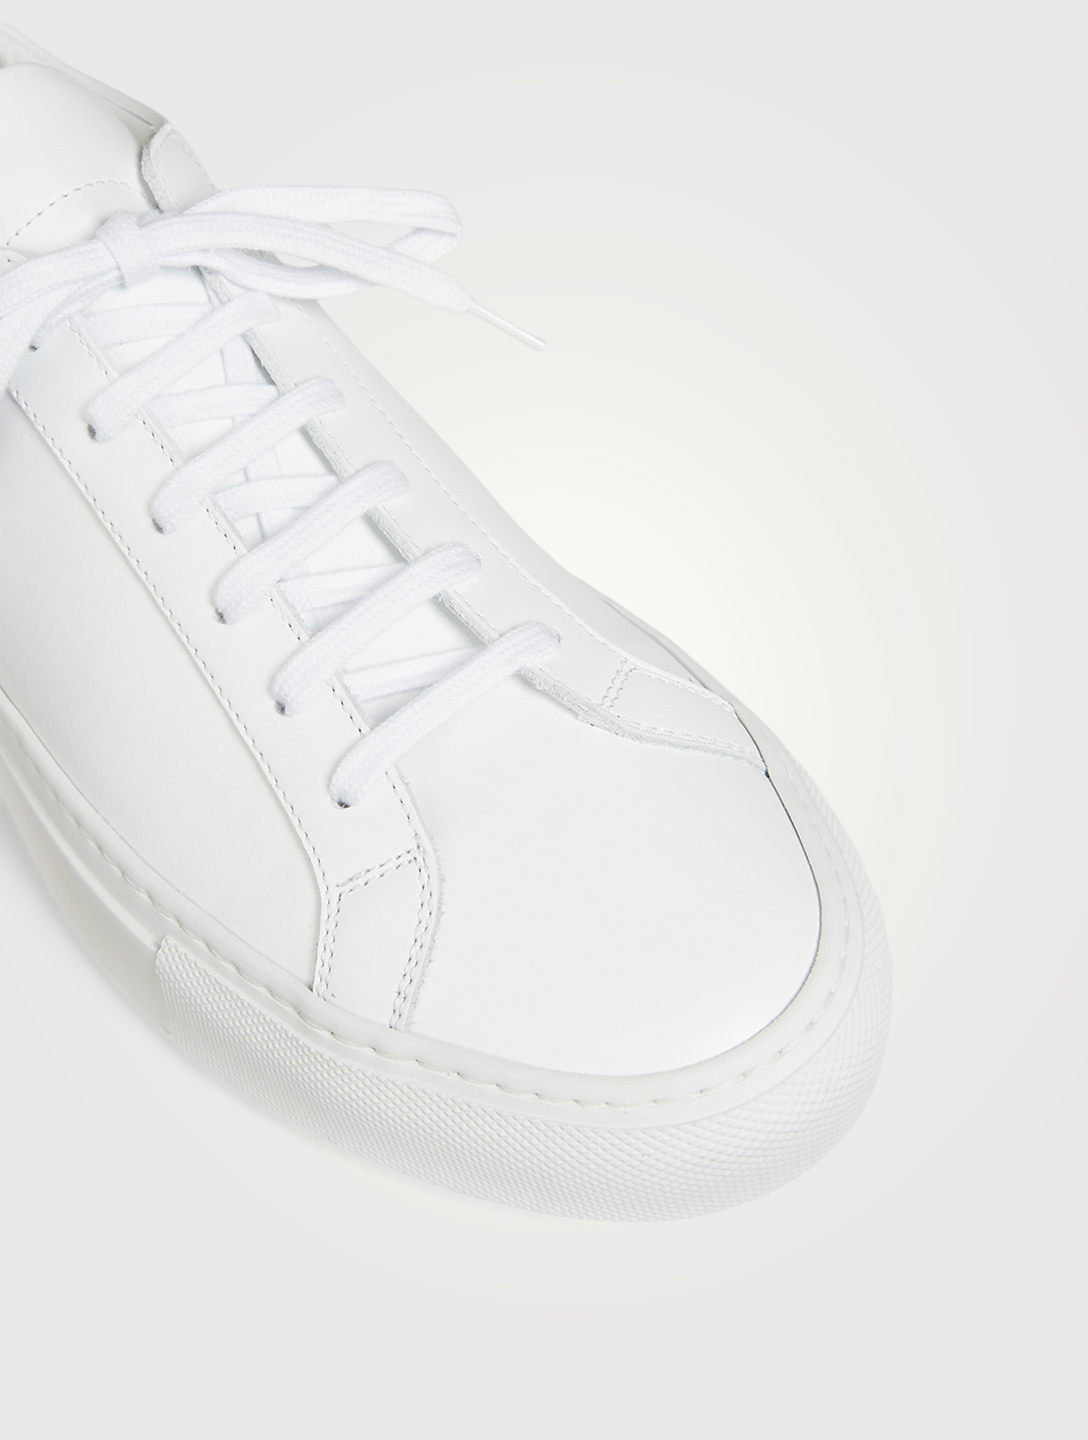 COMMON PROJECTS Original Achilles Leather Sneakers Men's White